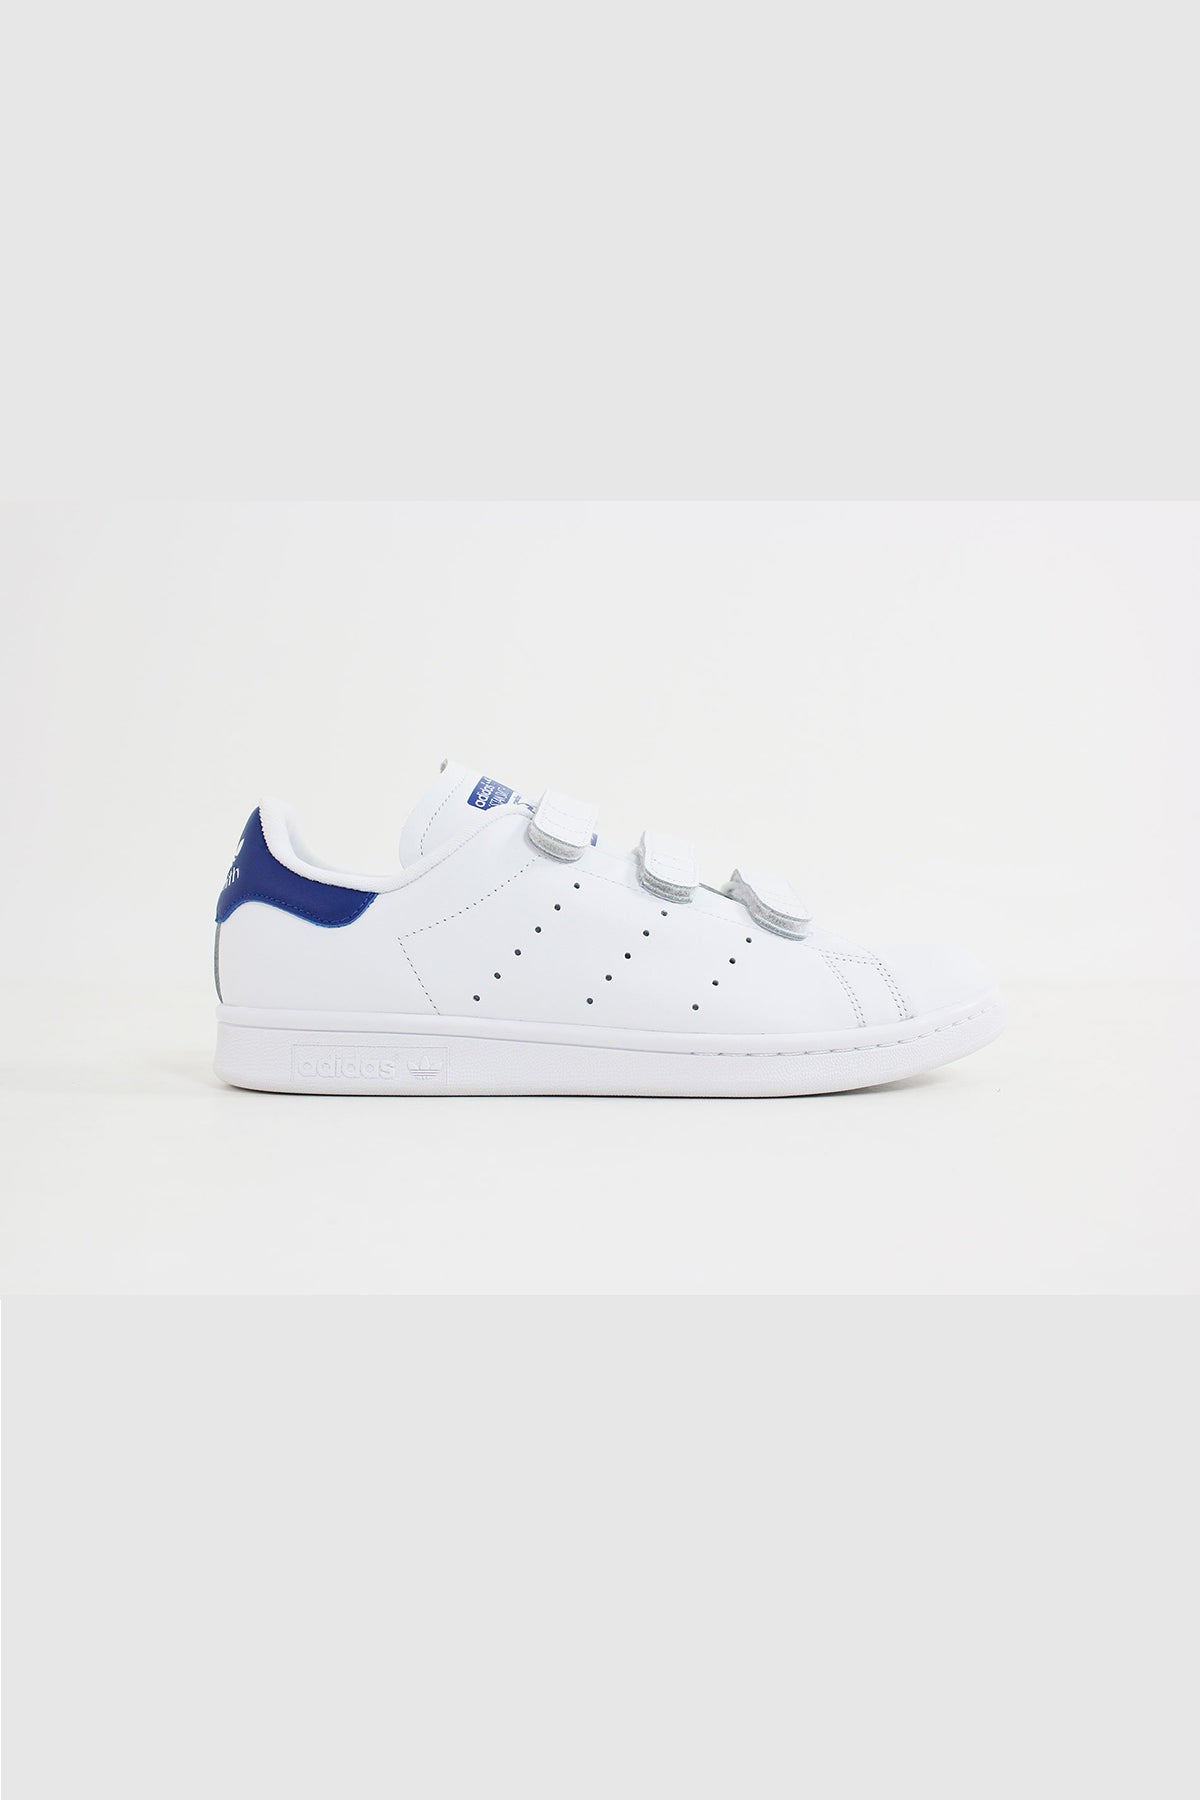 Adidas - Stan Smith CF (White/ White/ Croyal) S80042